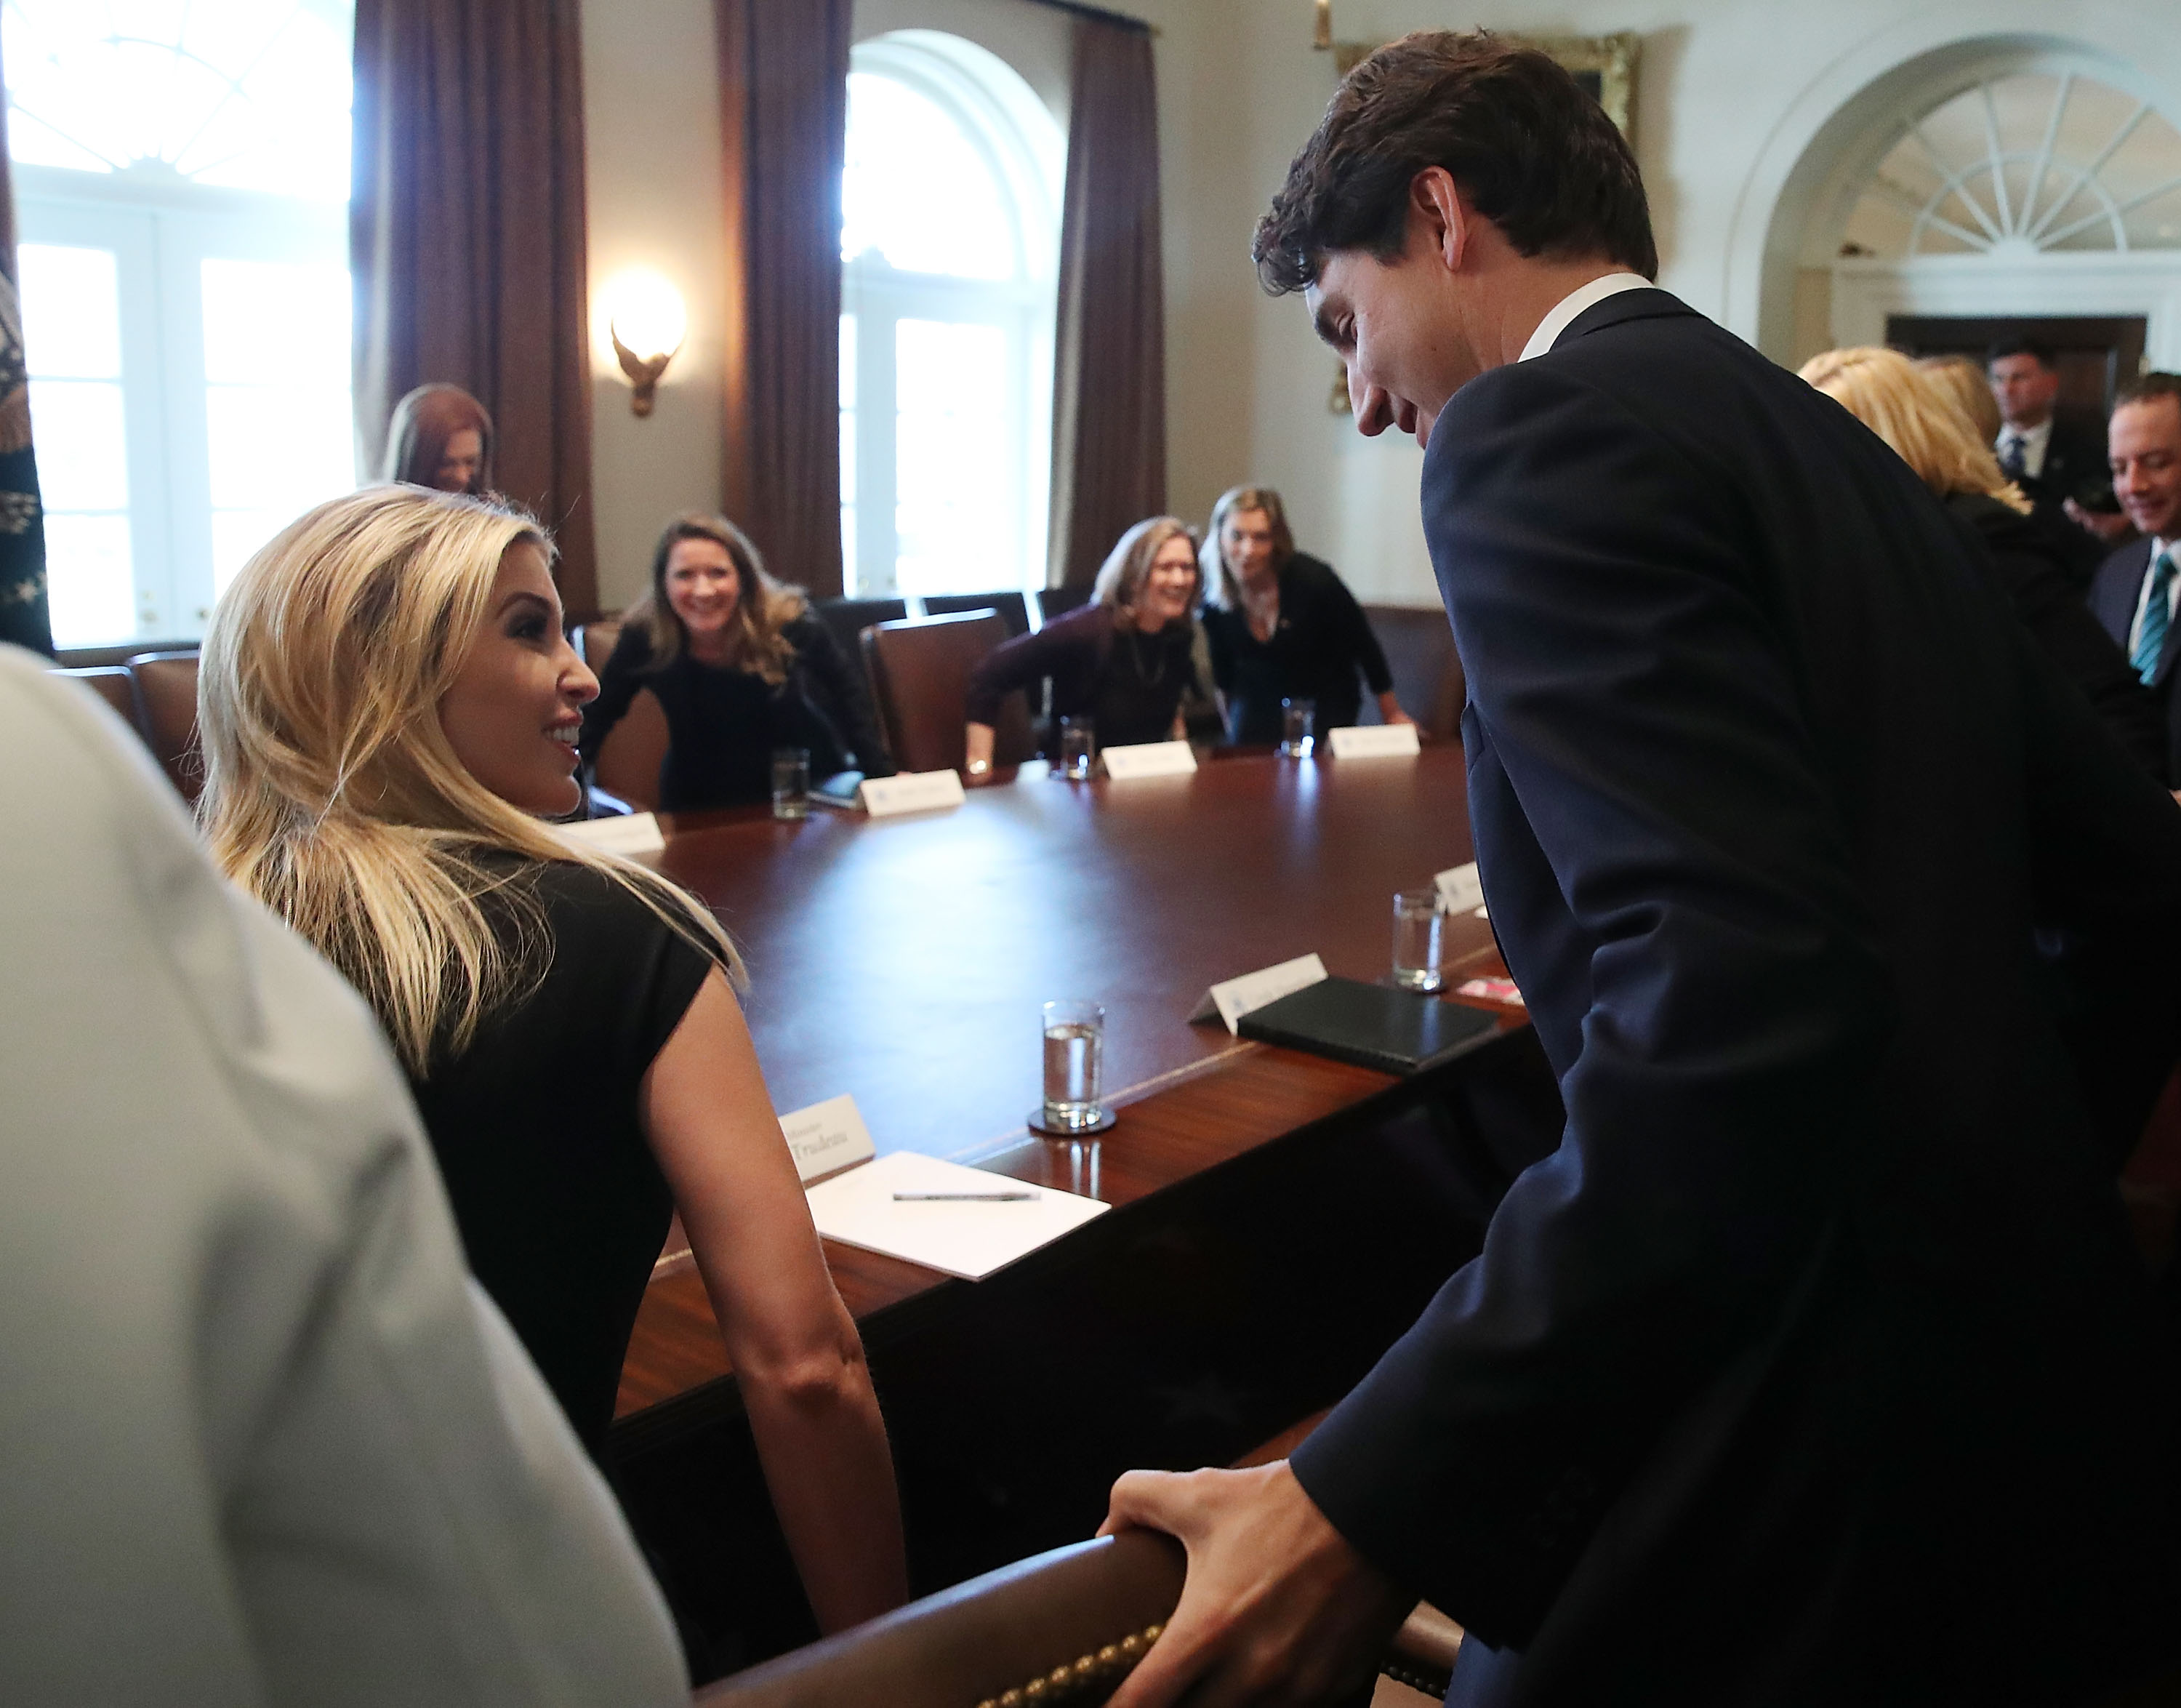 WASHINGTON, DC - FEBRUARY 13: Canadian Prime Minister Justin Trudeau (R) helps Ivanka Trump with he chair during a roundtable discussion on the advancement of women entrepreneurs and business leaders at the White House February 13, 2017 in Washington, DC. Later in the day Prime Minister Justin Trudeau will joing U.S. President Donald Trump in a joint news conference. (Photo by Mark Wilson/Getty Images)